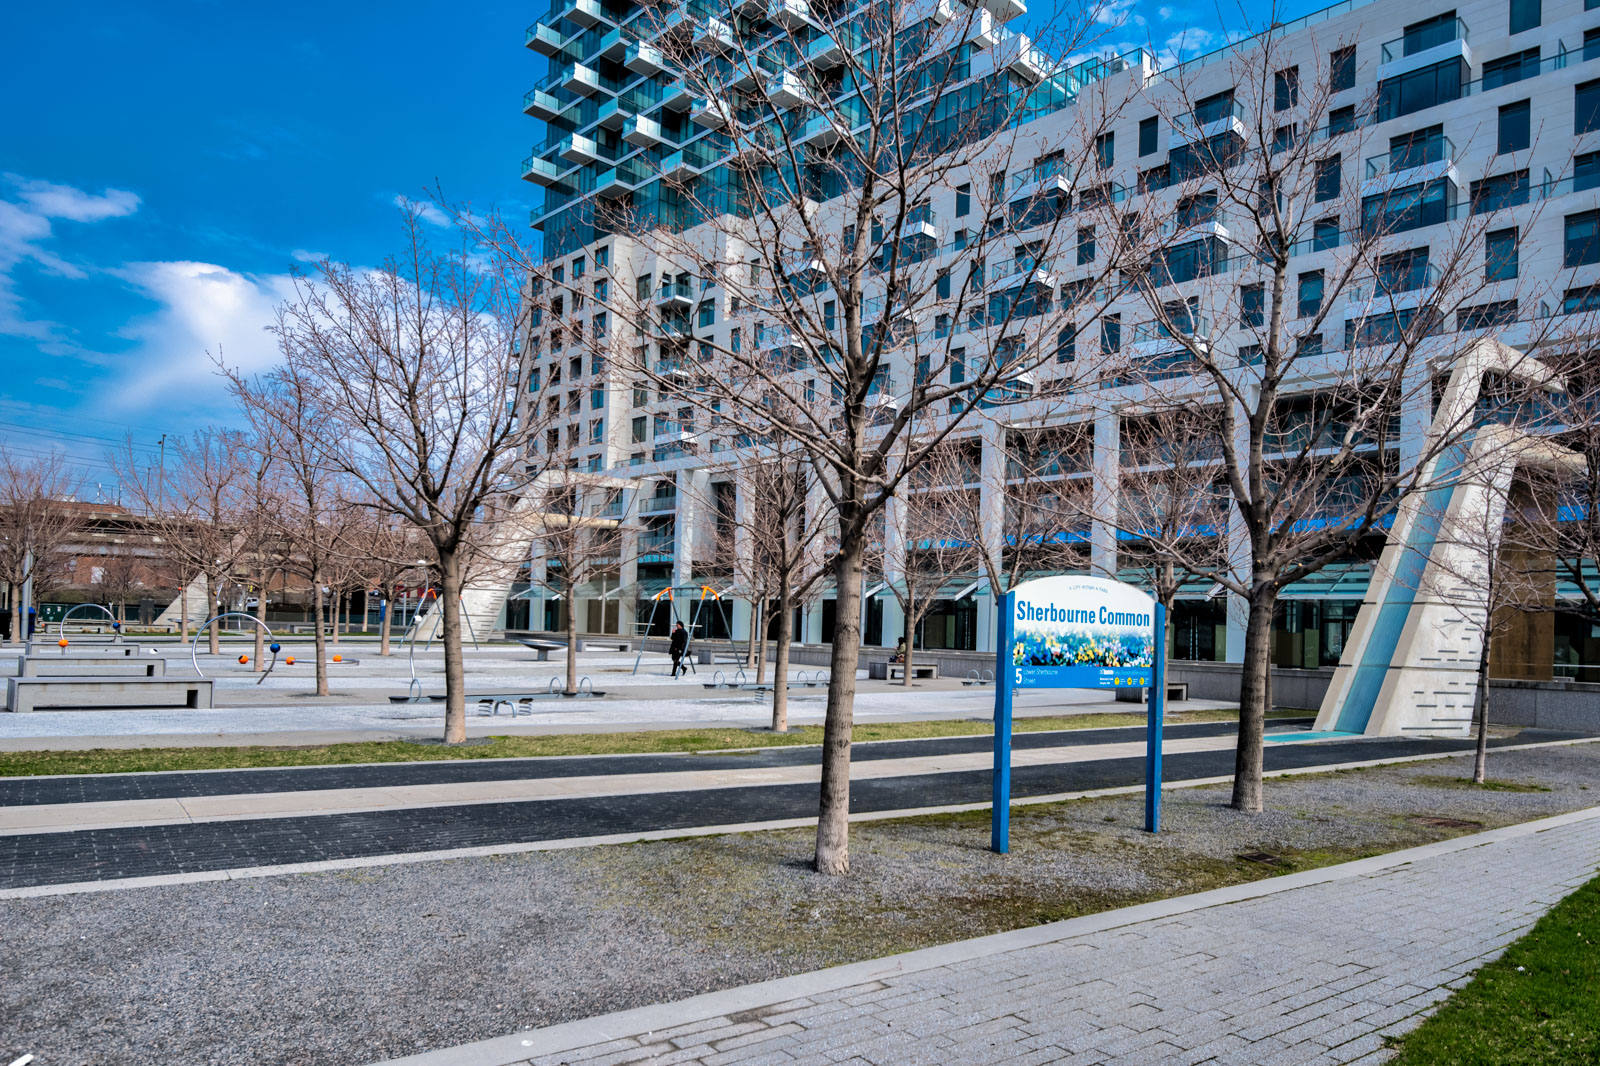 Pic of Sherbourne Commons, a park almost right outside 16 Bonnycastle.